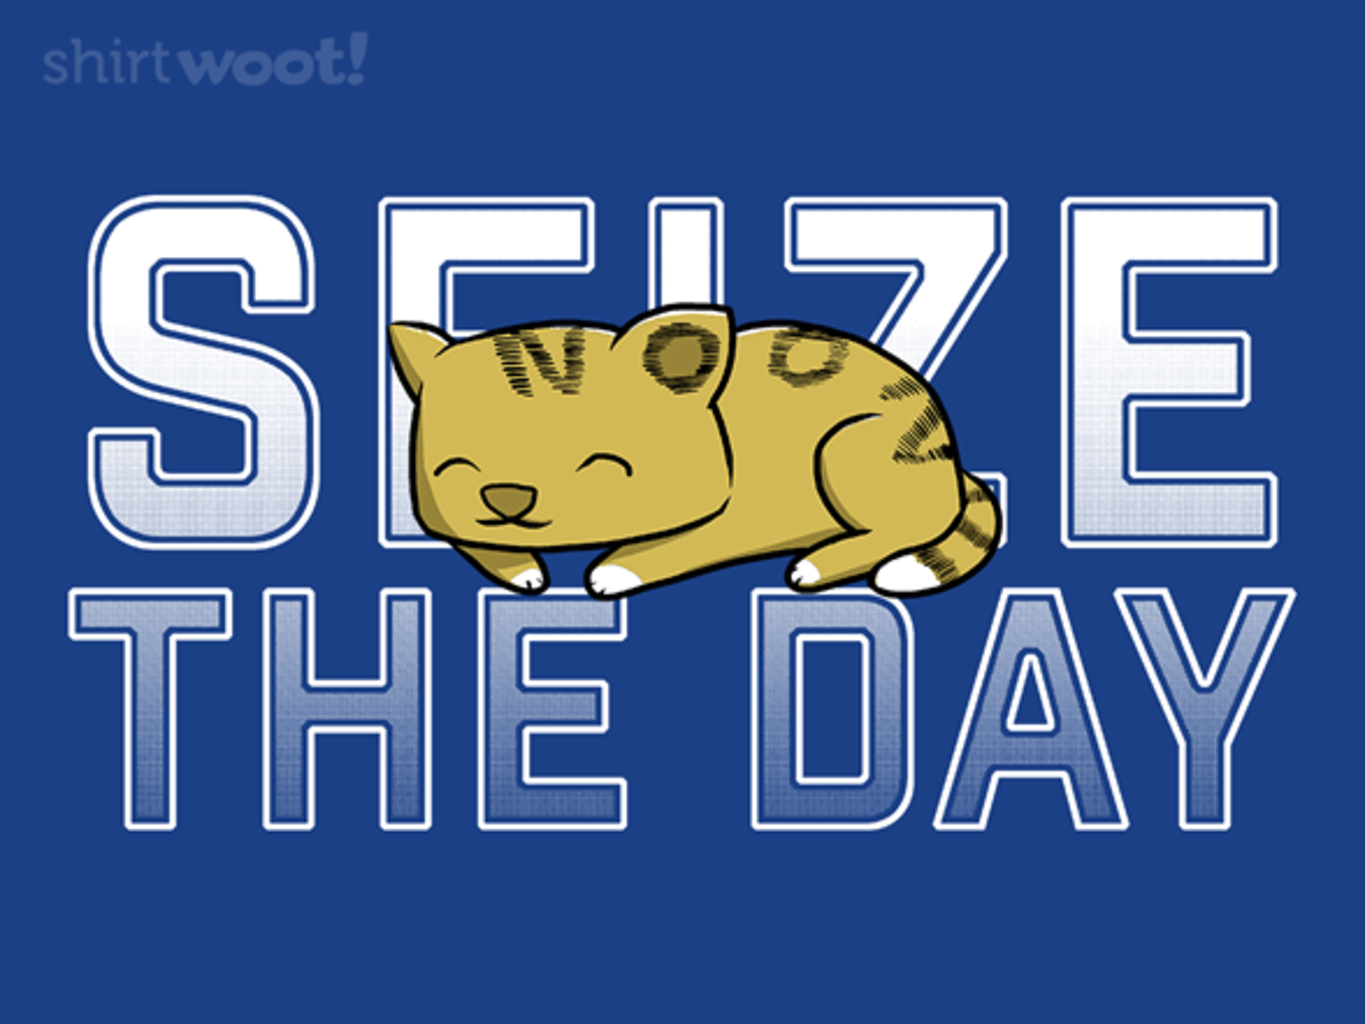 Woot!: Snooze The Day